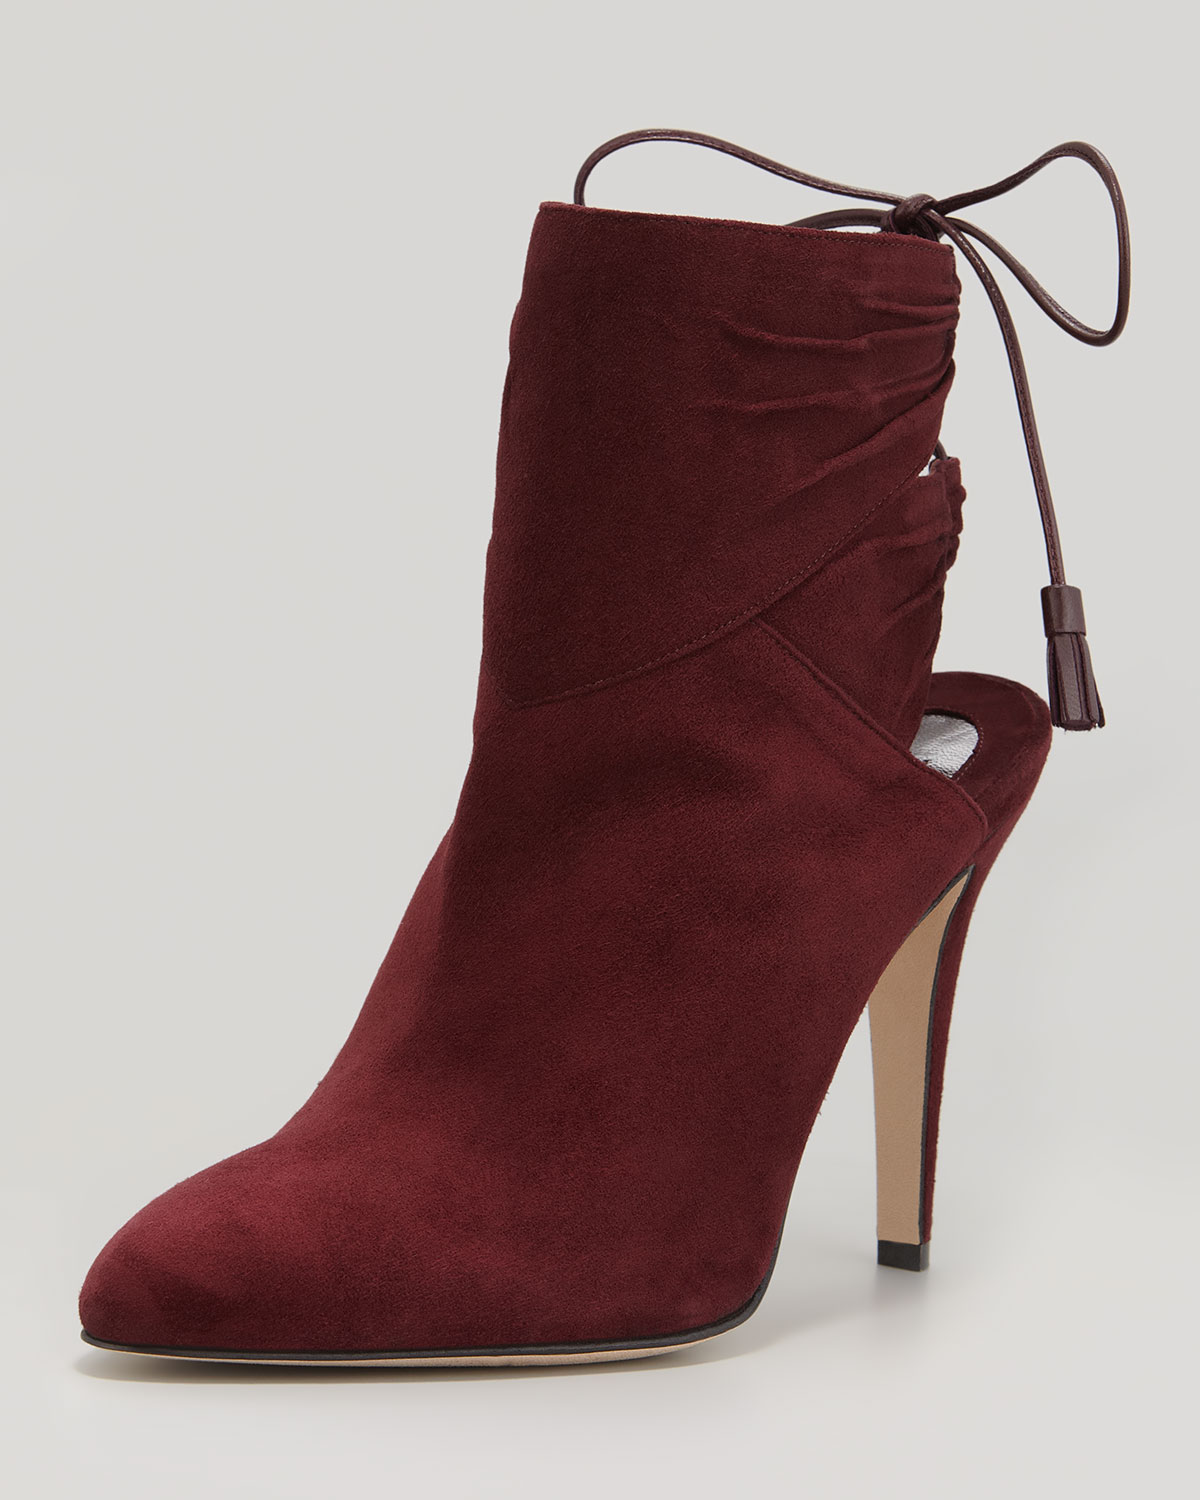 brian atwood arron suede tie back ankle boot in